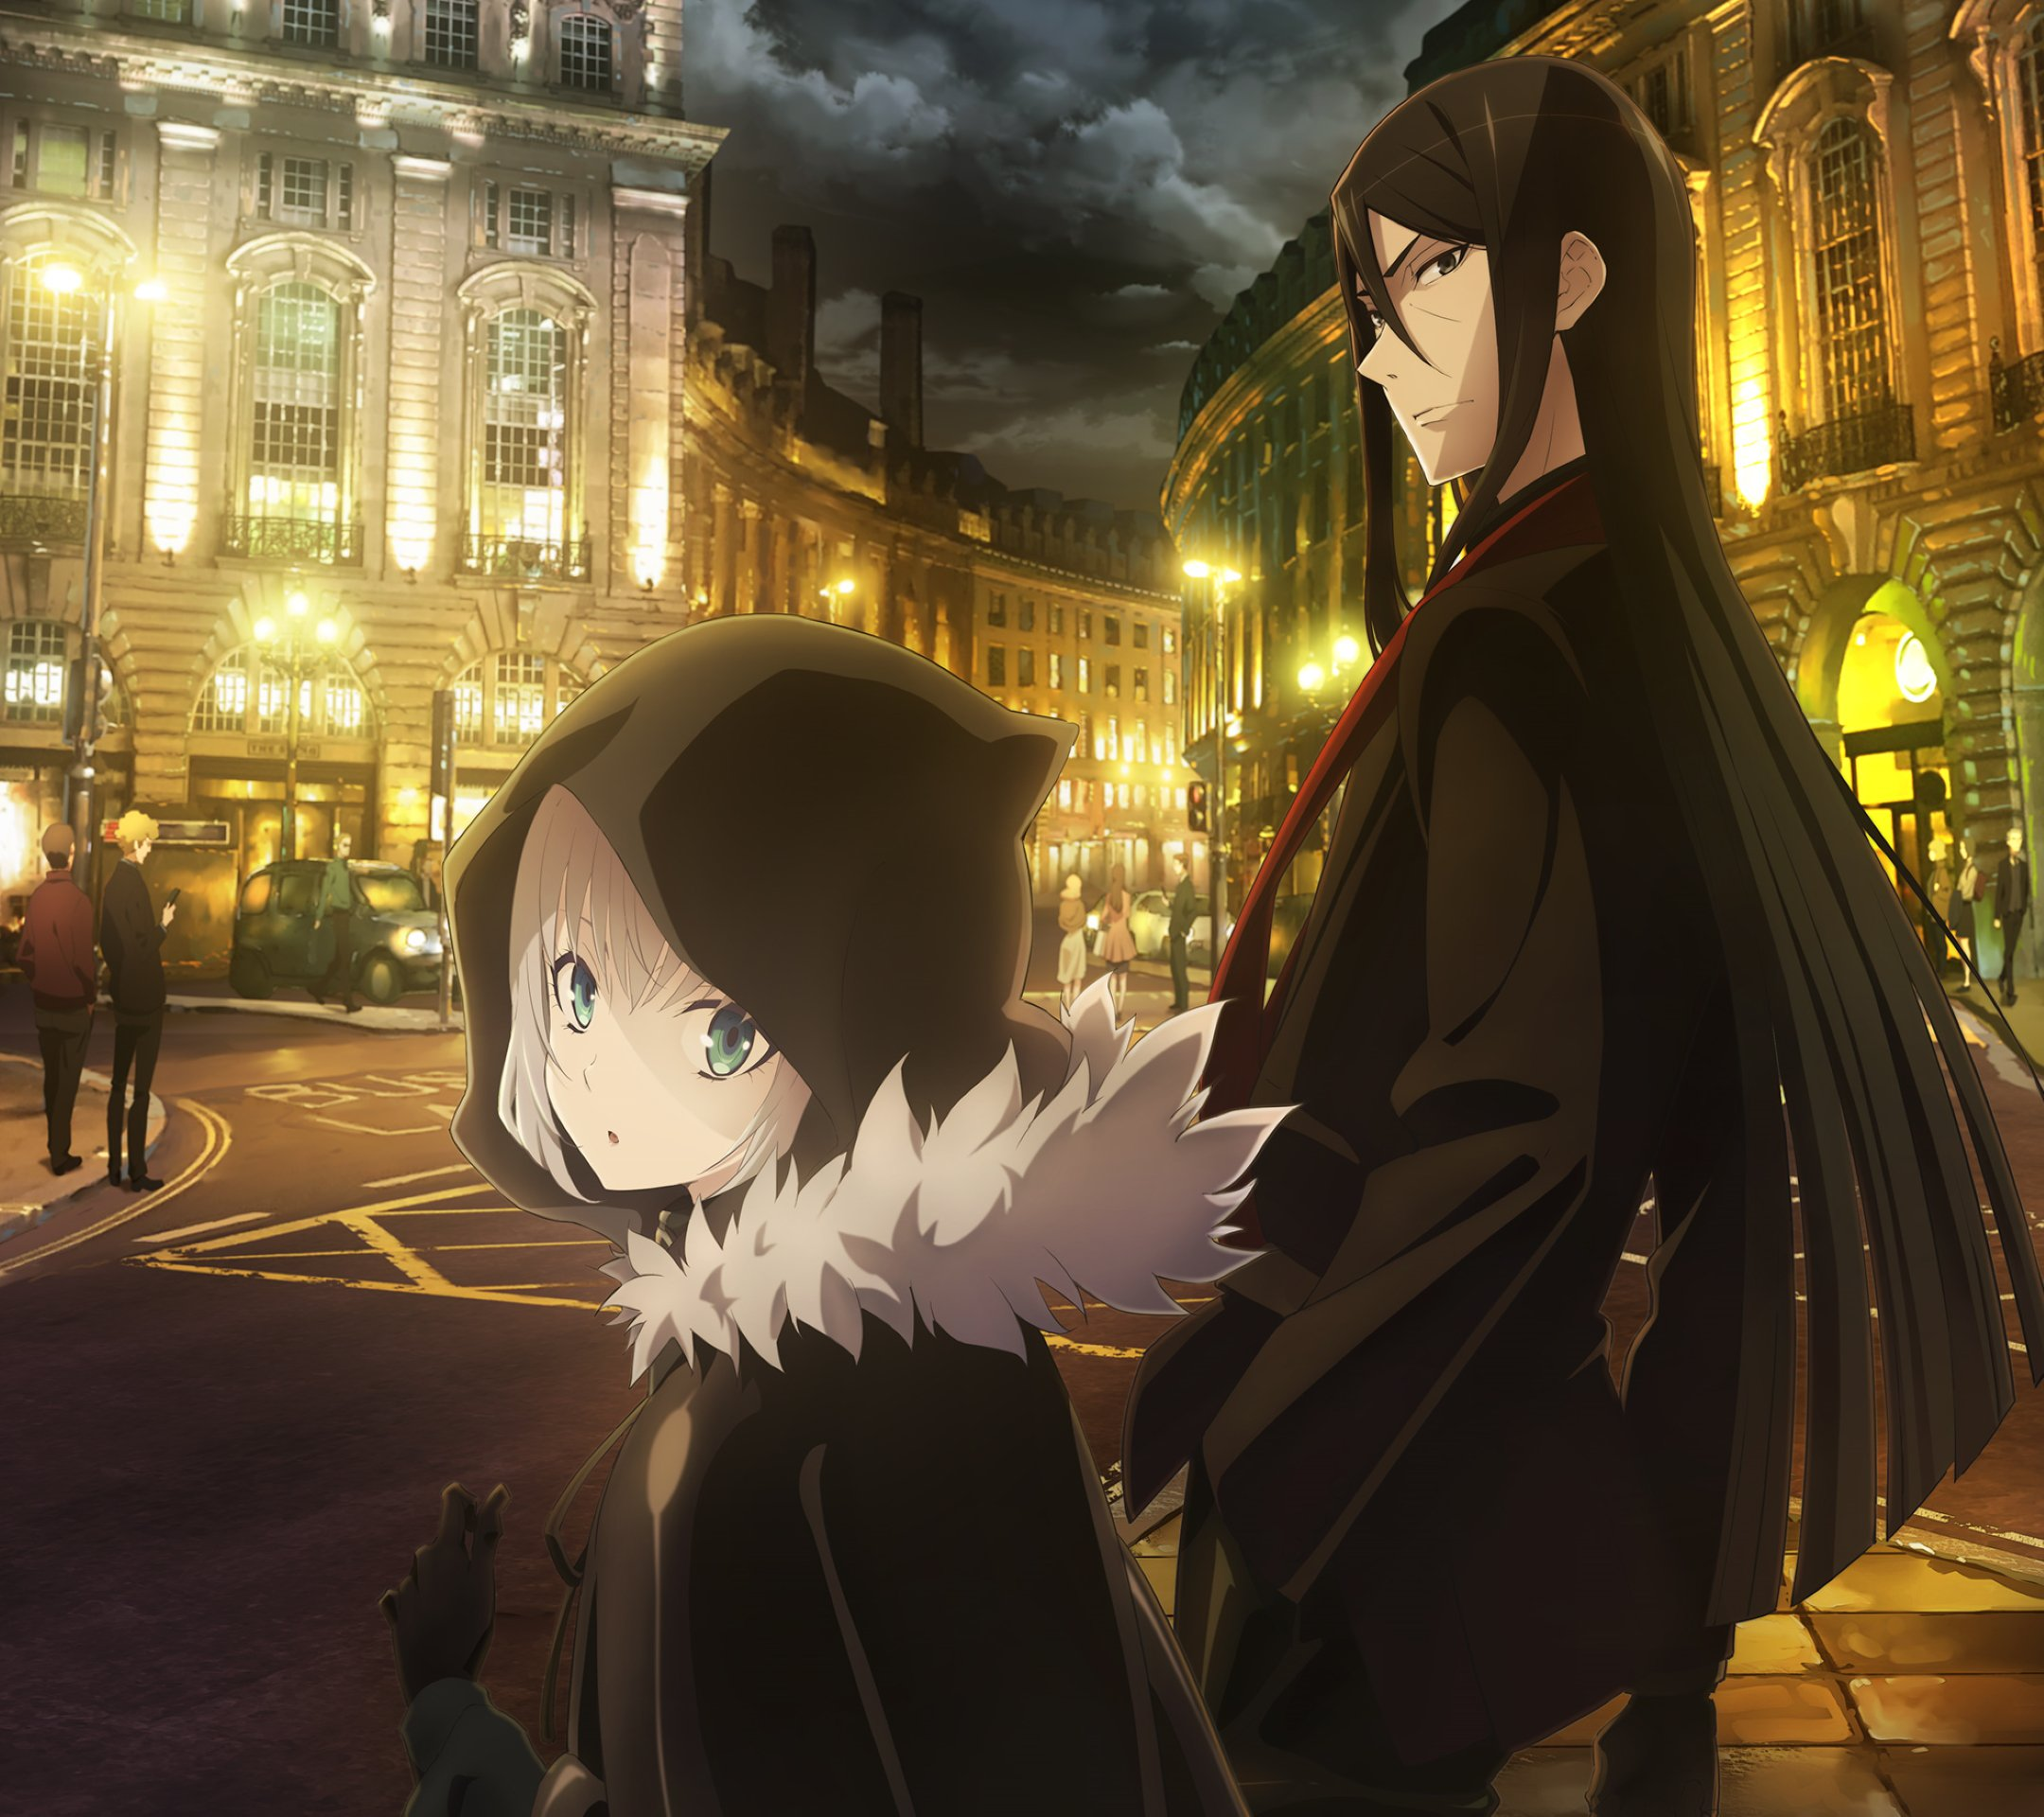 Case Files of Lord El-Melloi II Waver Velvet Gray 2160x1920